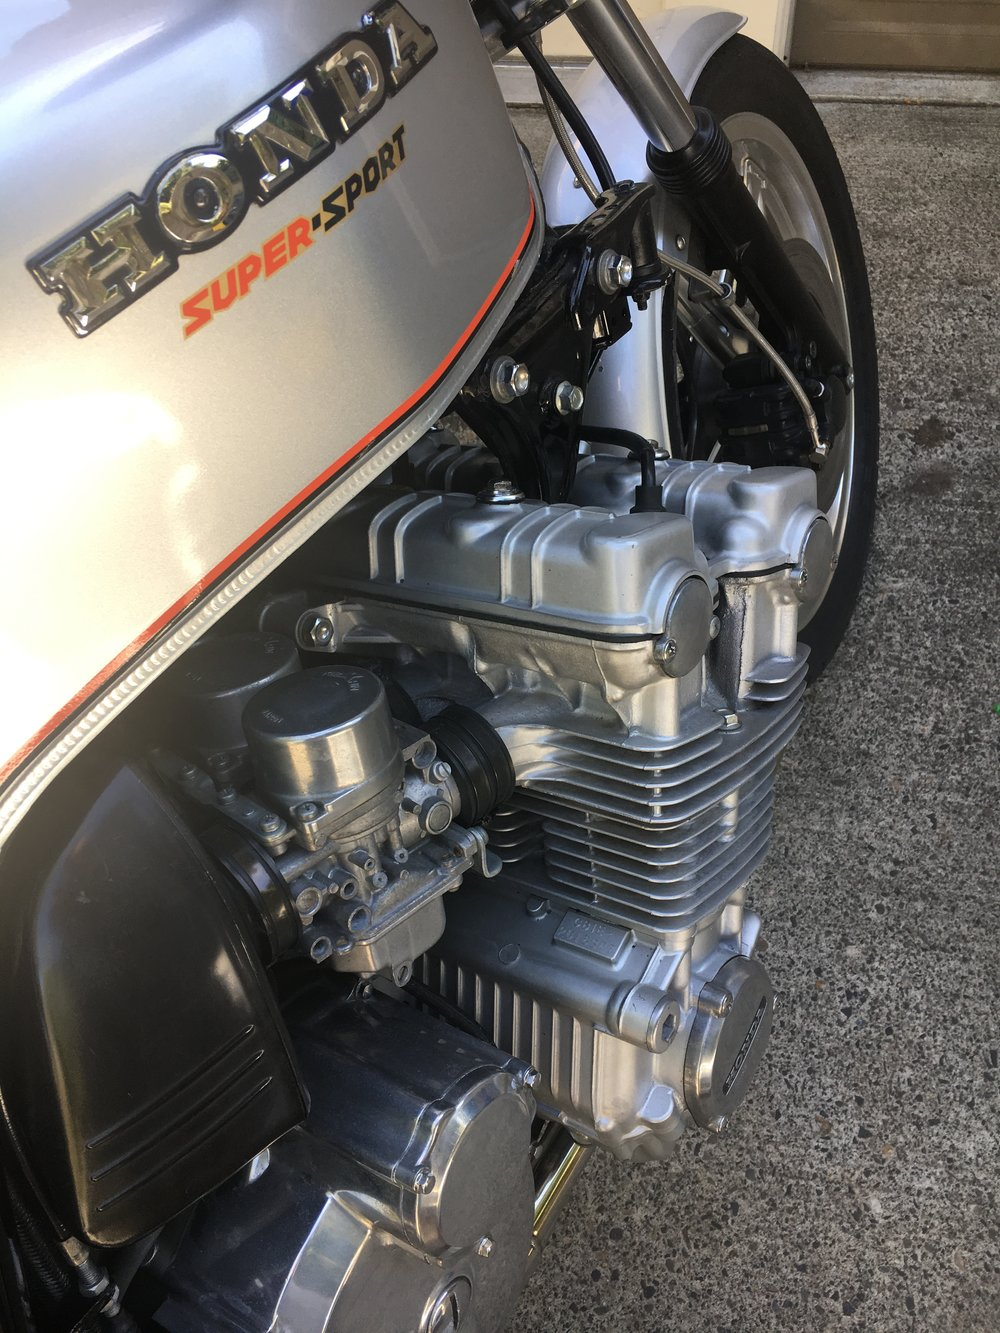 The Honda CBX engine always makes a statement.